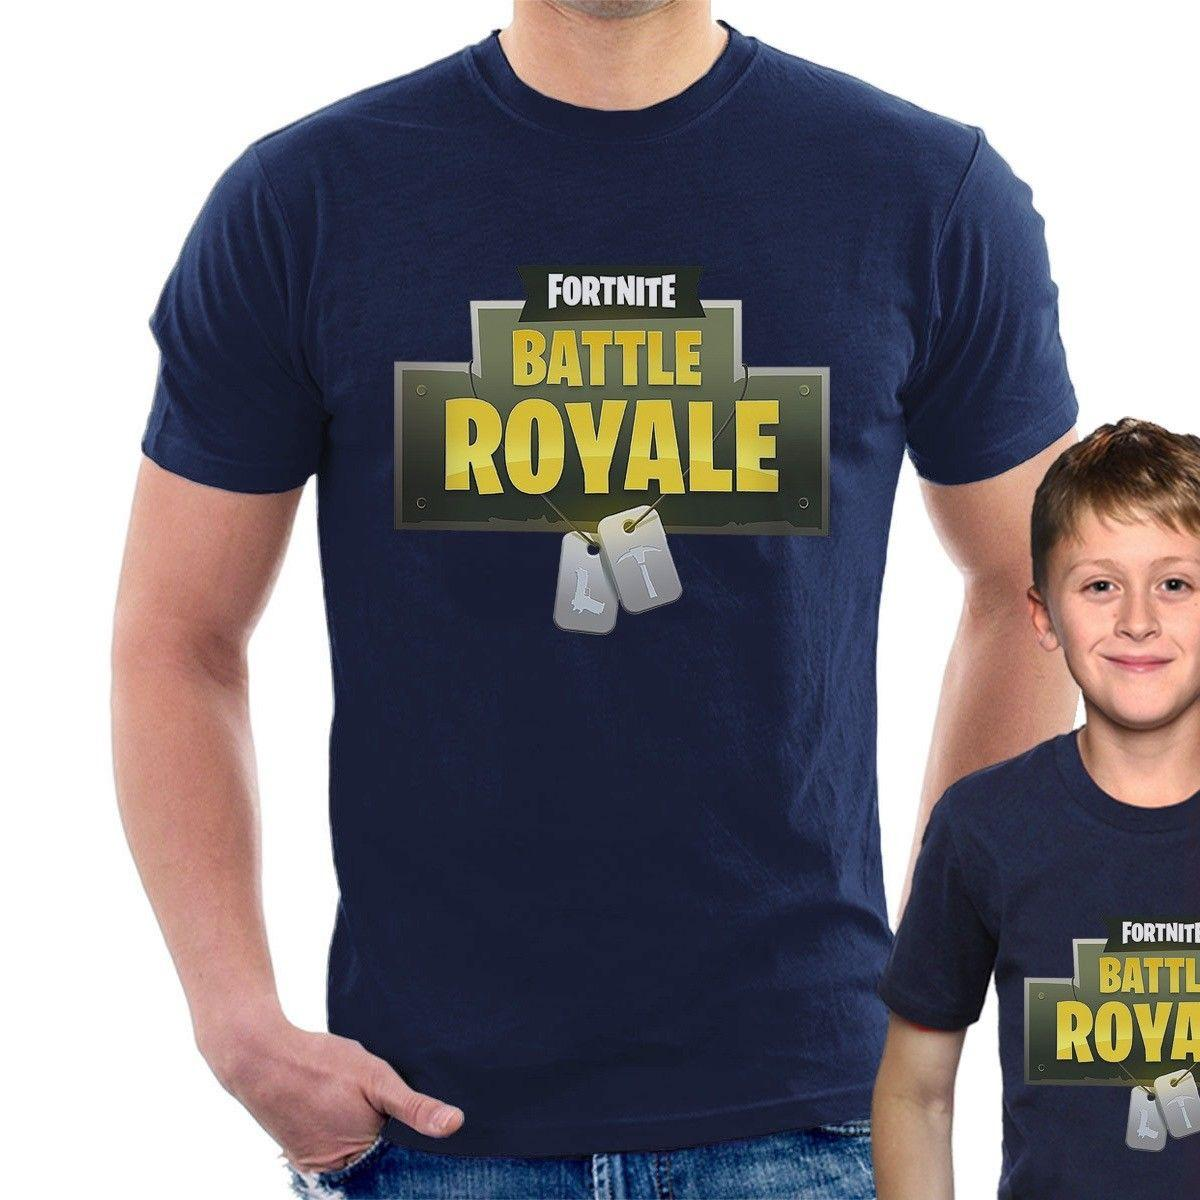 27c0c91b FORTNITE BATTLE ROYALE T SHIRT Inspired Gaming Kids & Adults Sizes G04 Funny  Unisex Gift Cool Funny T Shirts On T Shirt From Topclassa, $12.96|  DHgate.Com